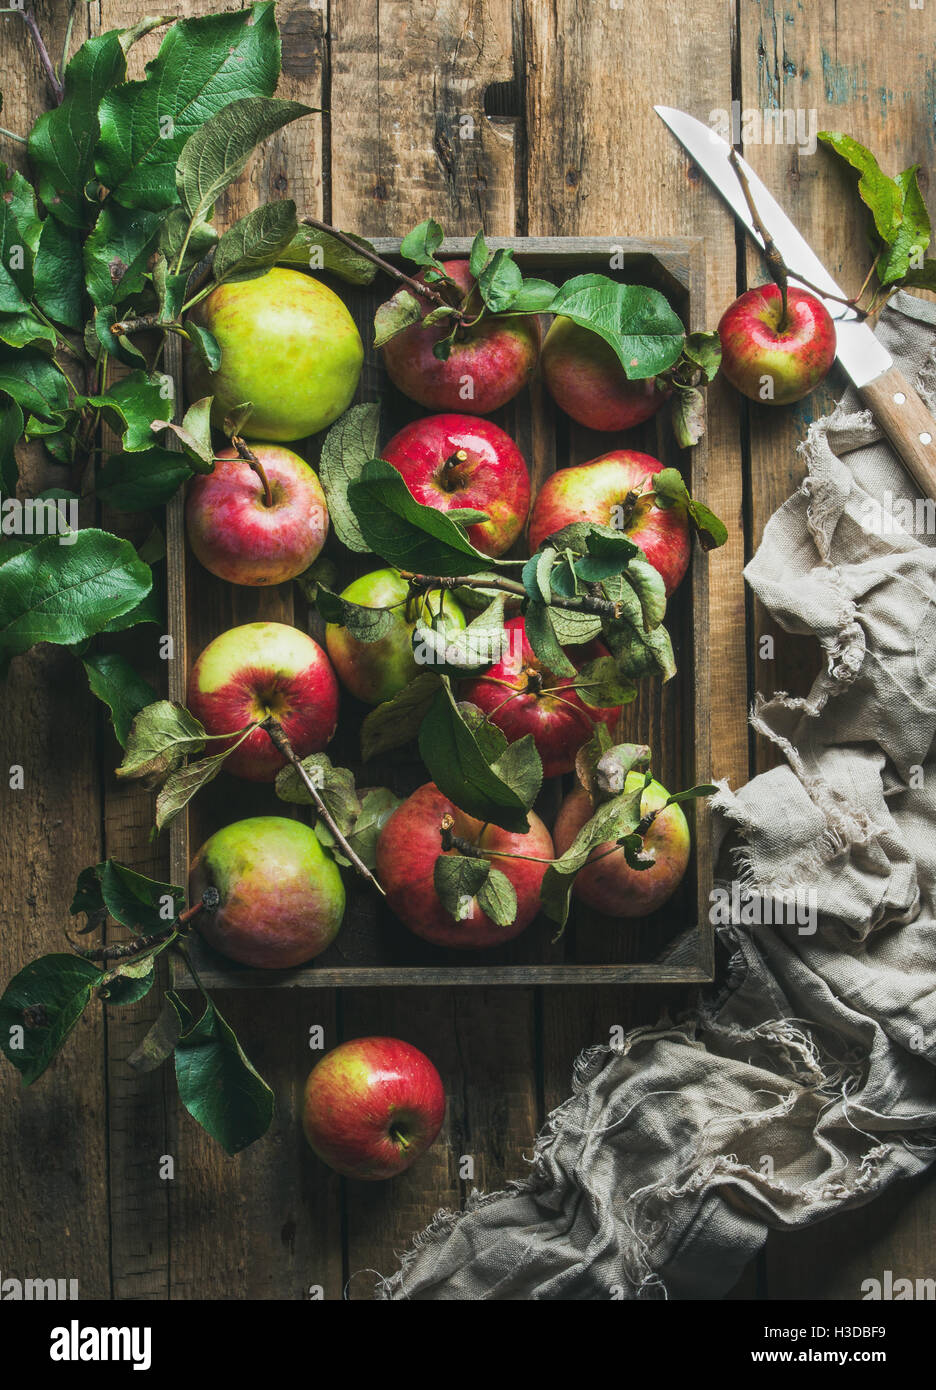 Seasonal garden harvest apples with green leaves in wooden tray - Stock Image